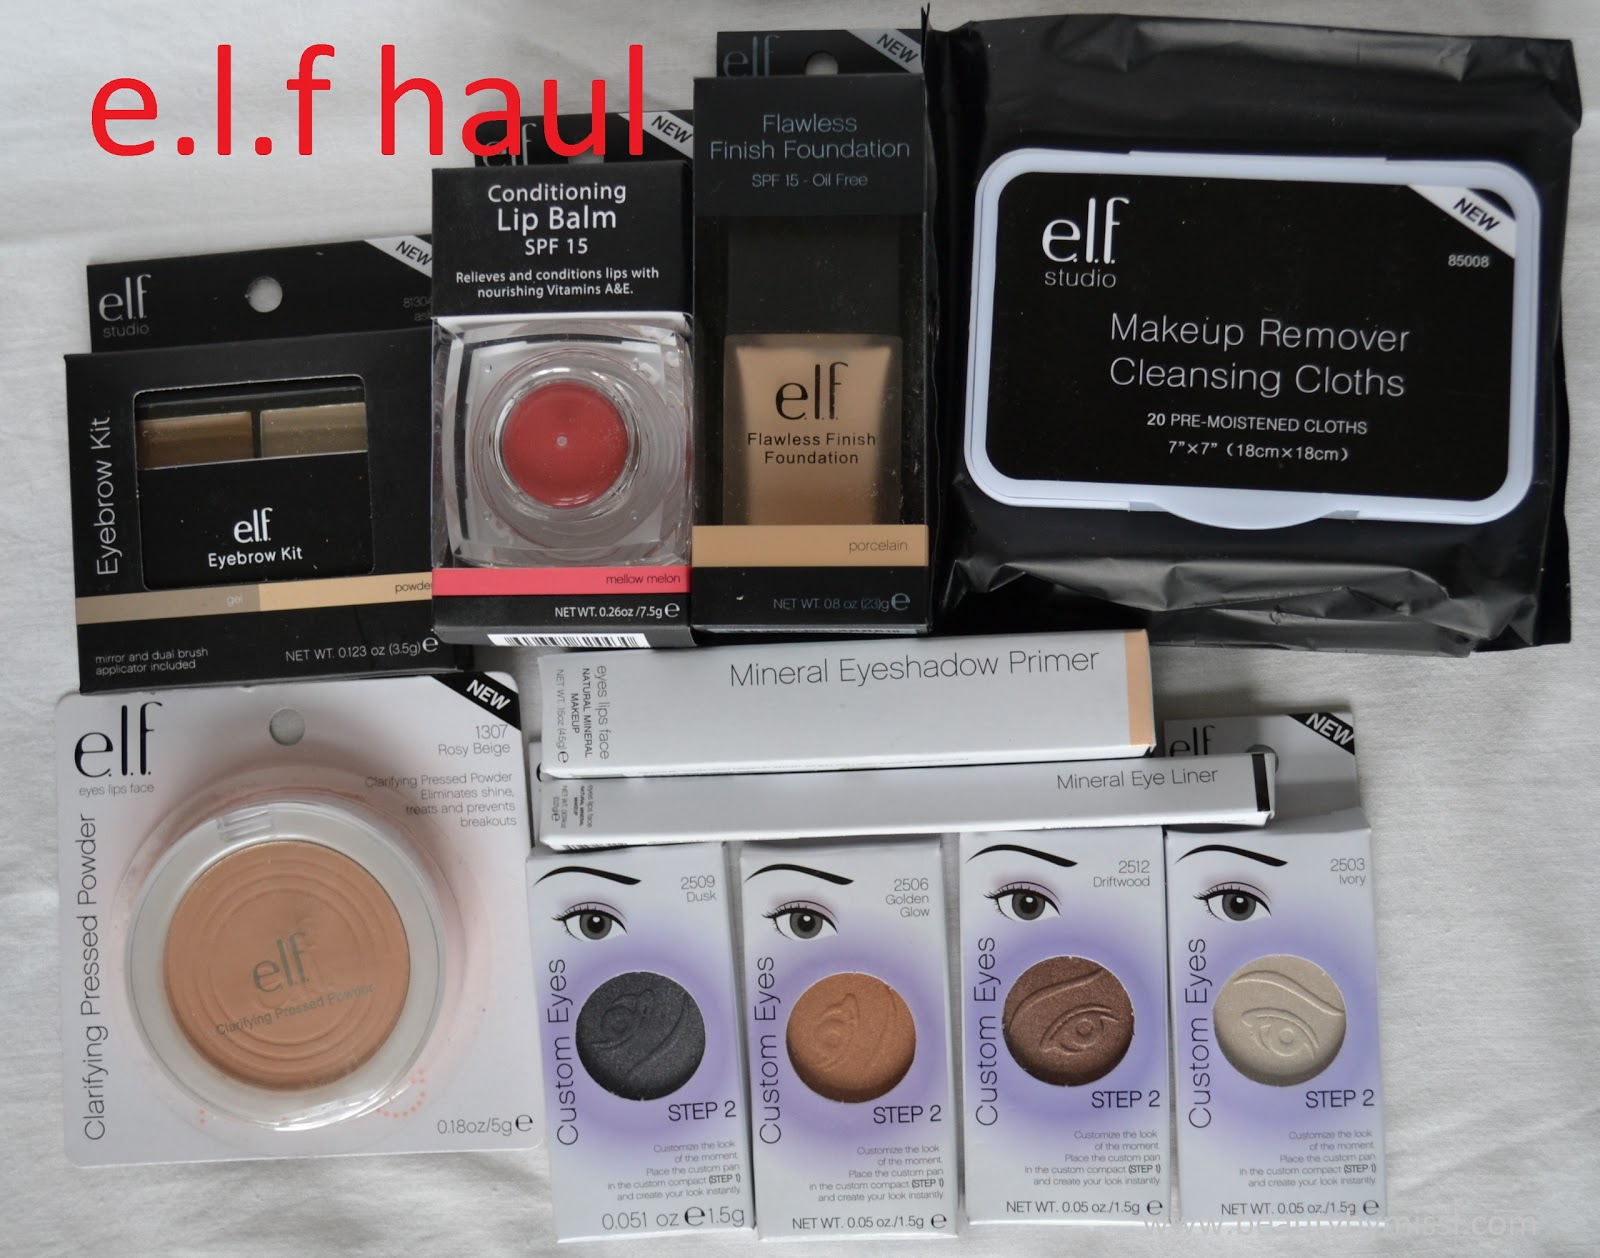 beauty products from elf, shopping